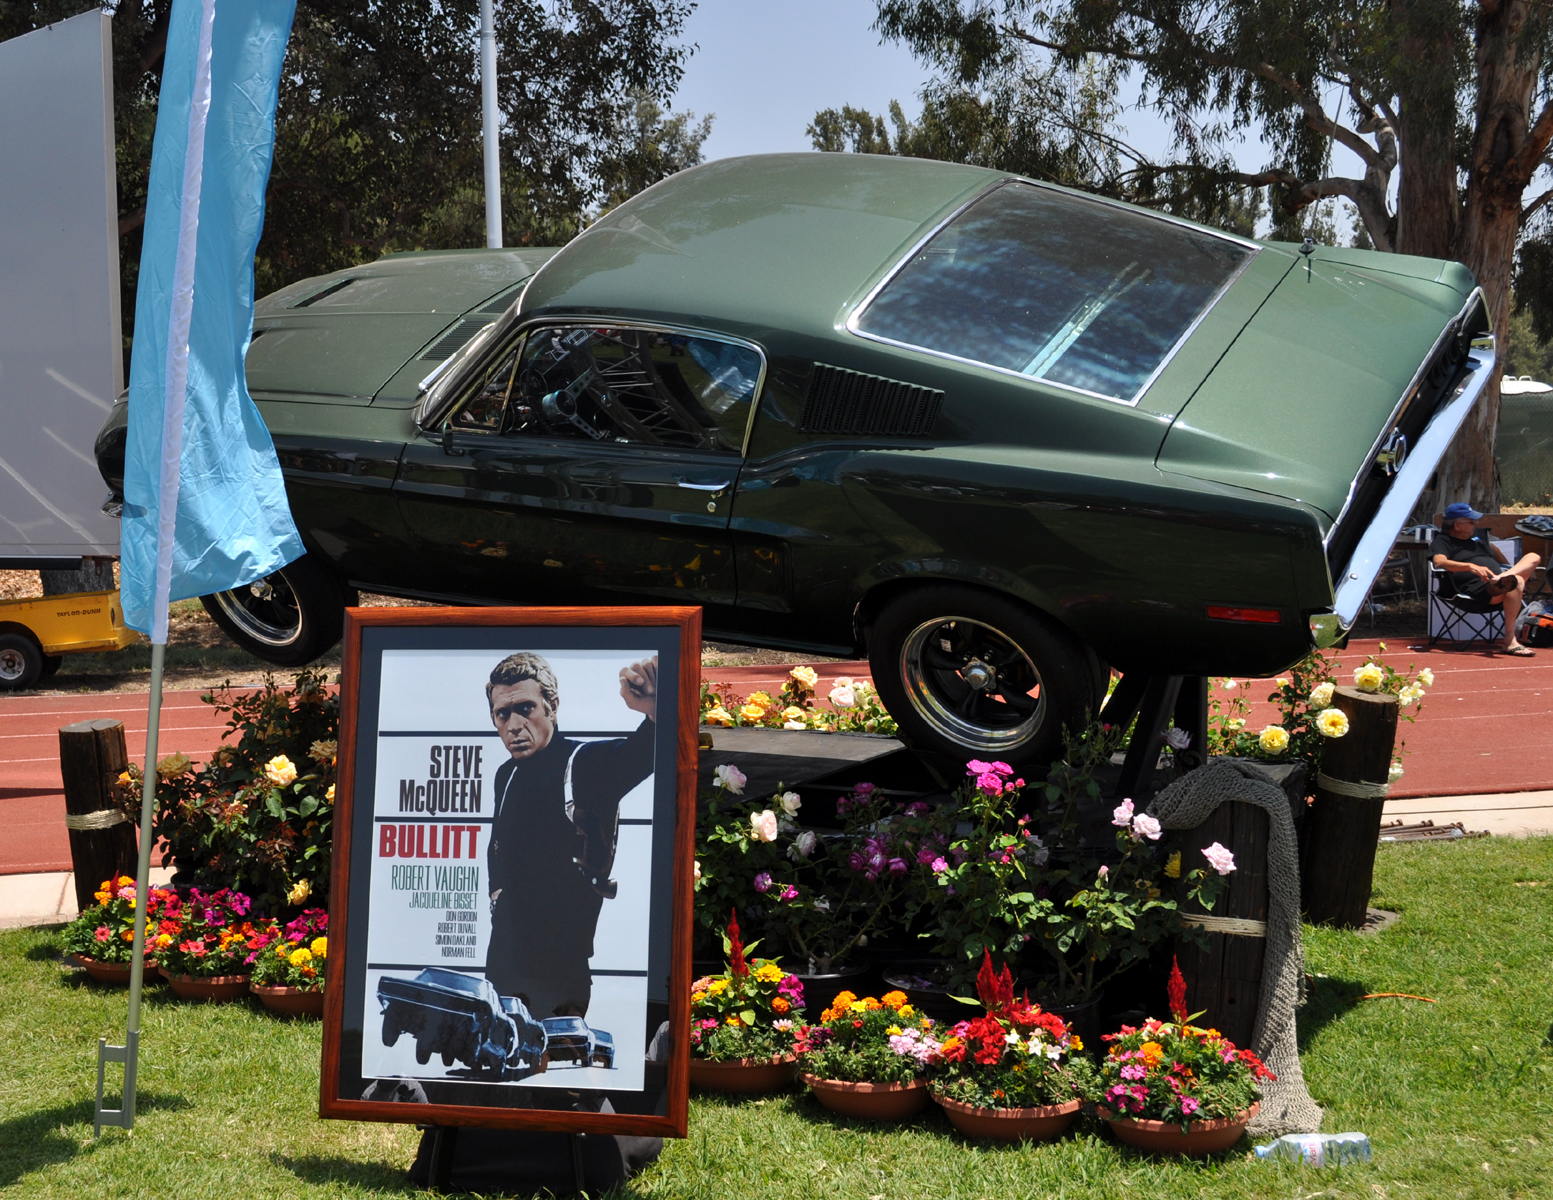 Just A Car Guy The Charger And Mustang From The Movie Bullitt And - Chino hills car show